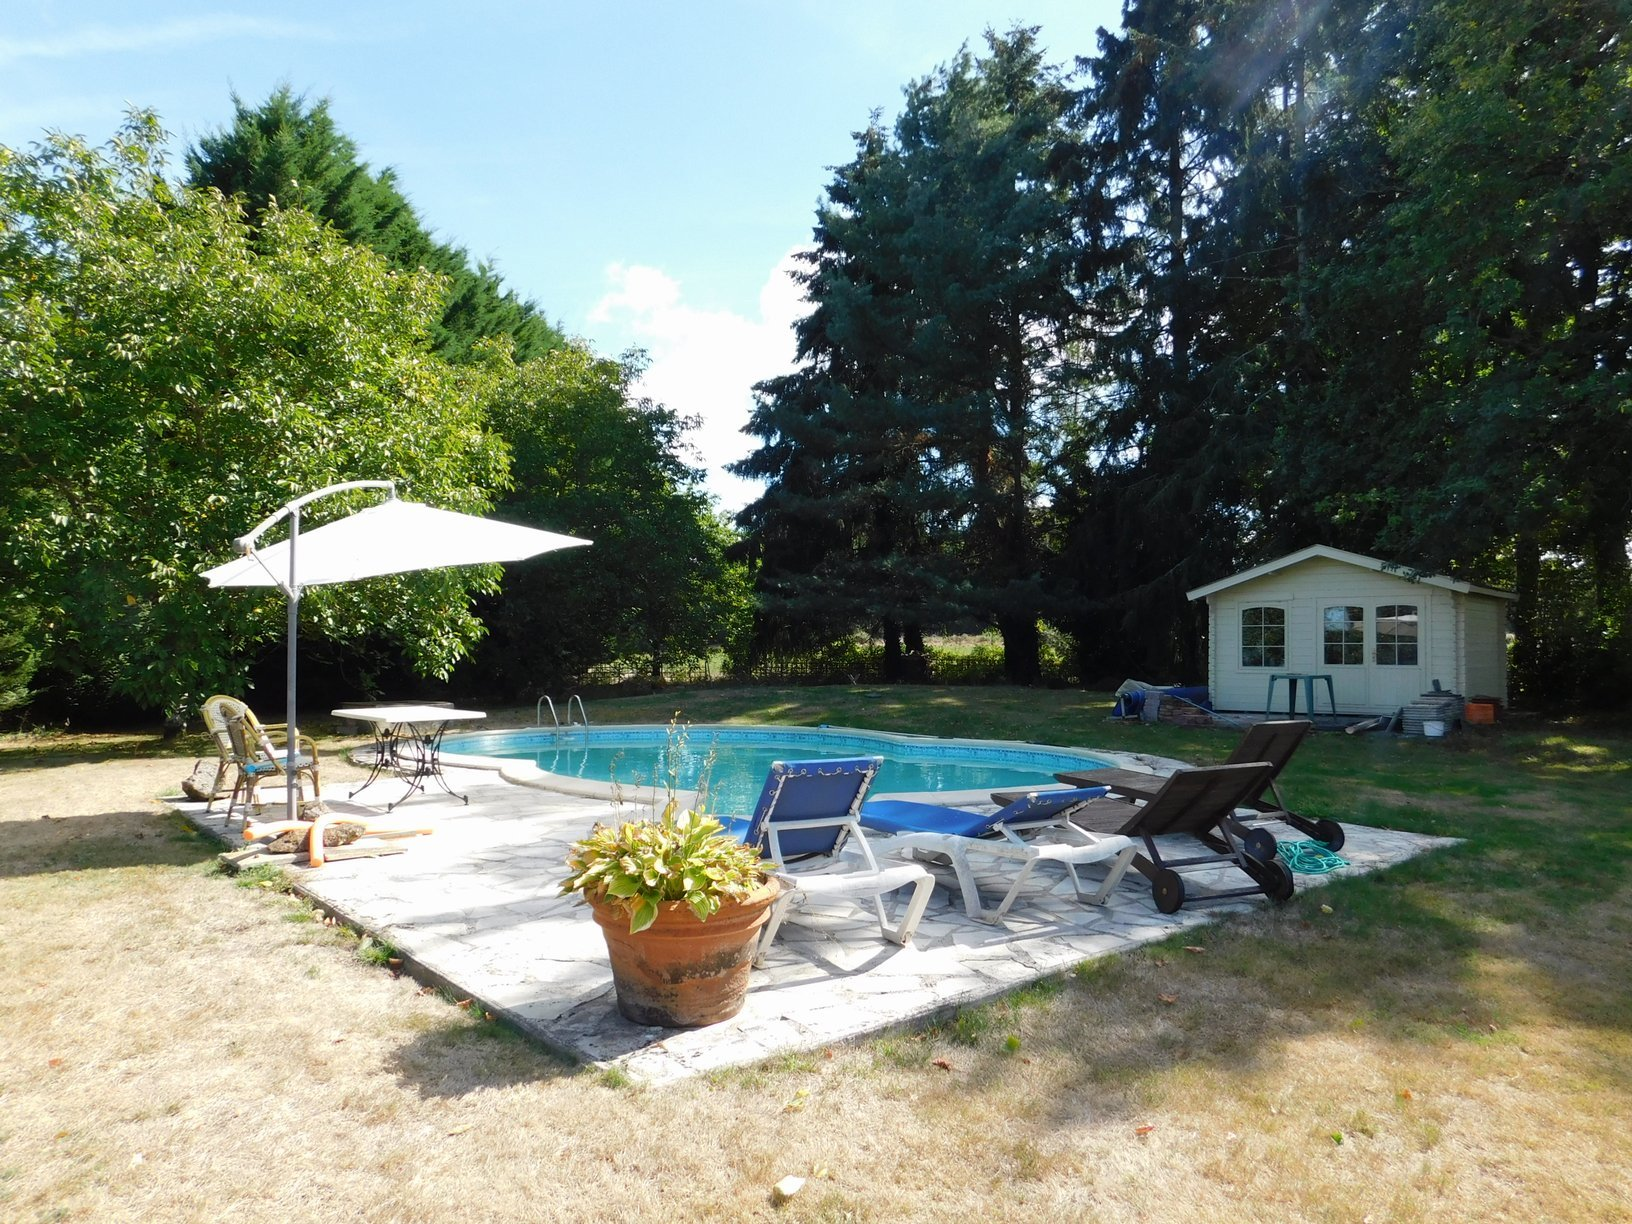 Character cottage with swimming pool in a private setting